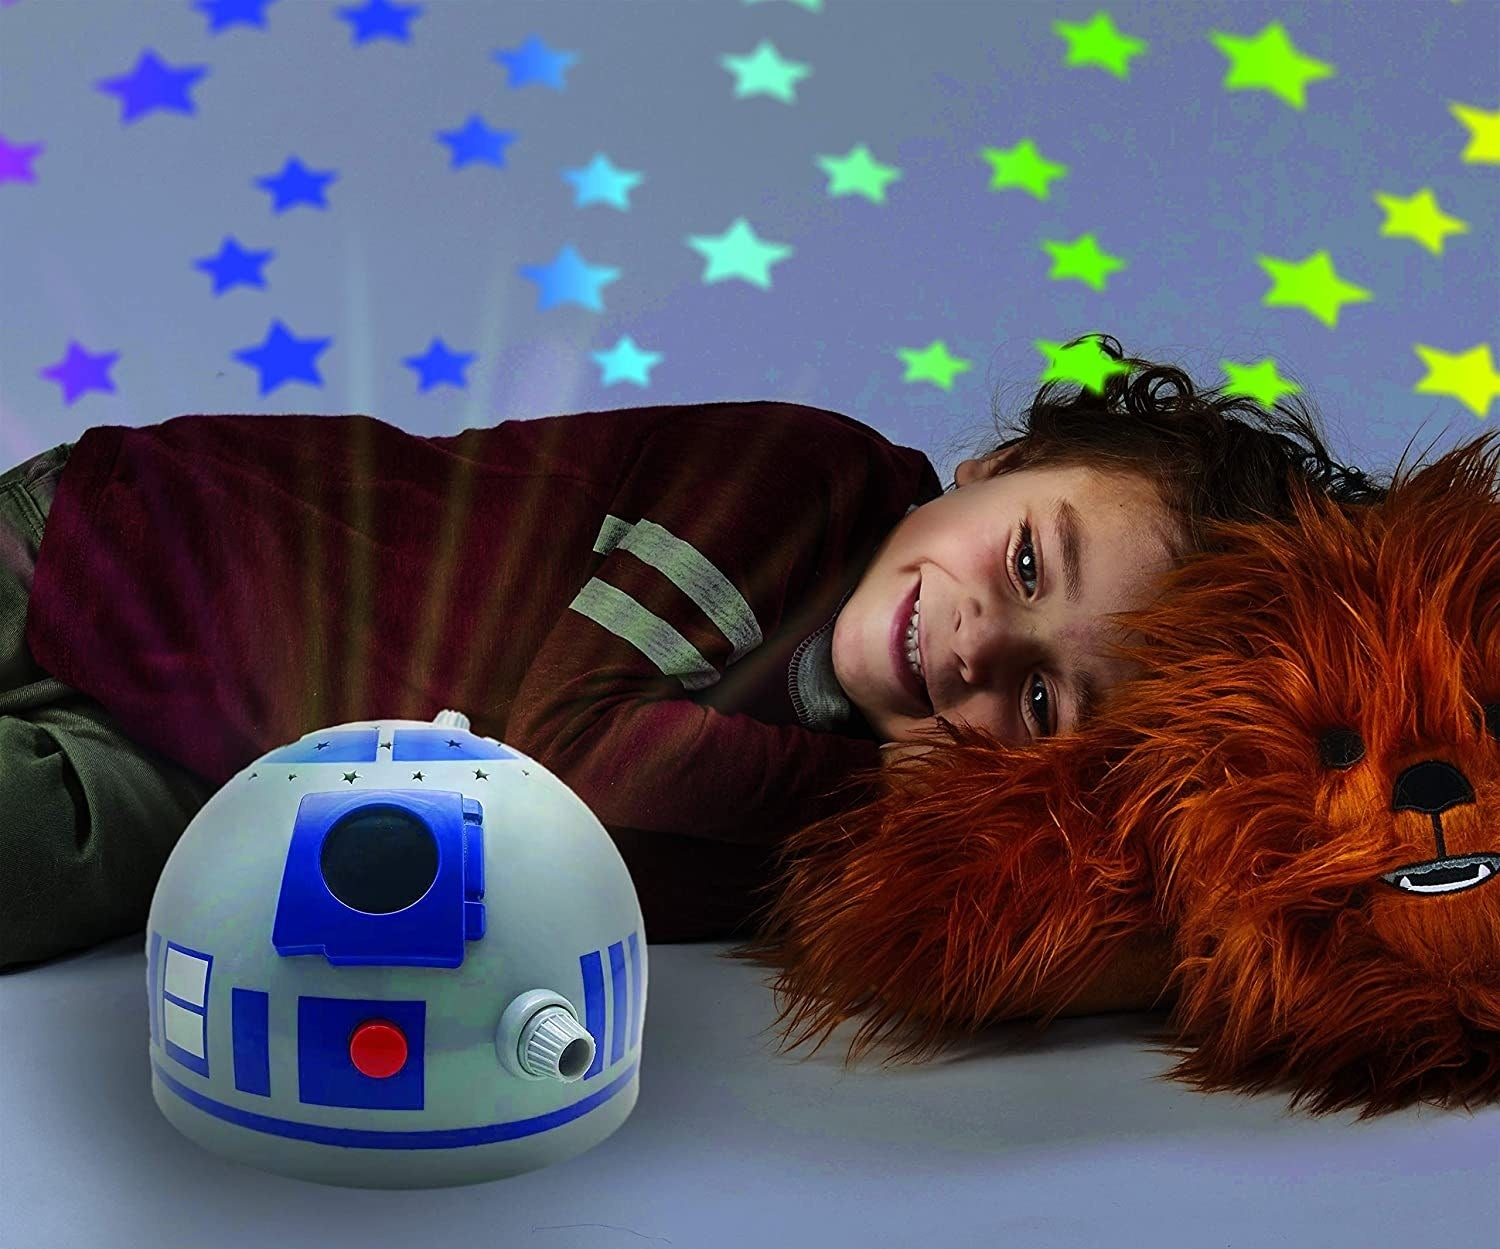 Child model with R2D2 light up pillow